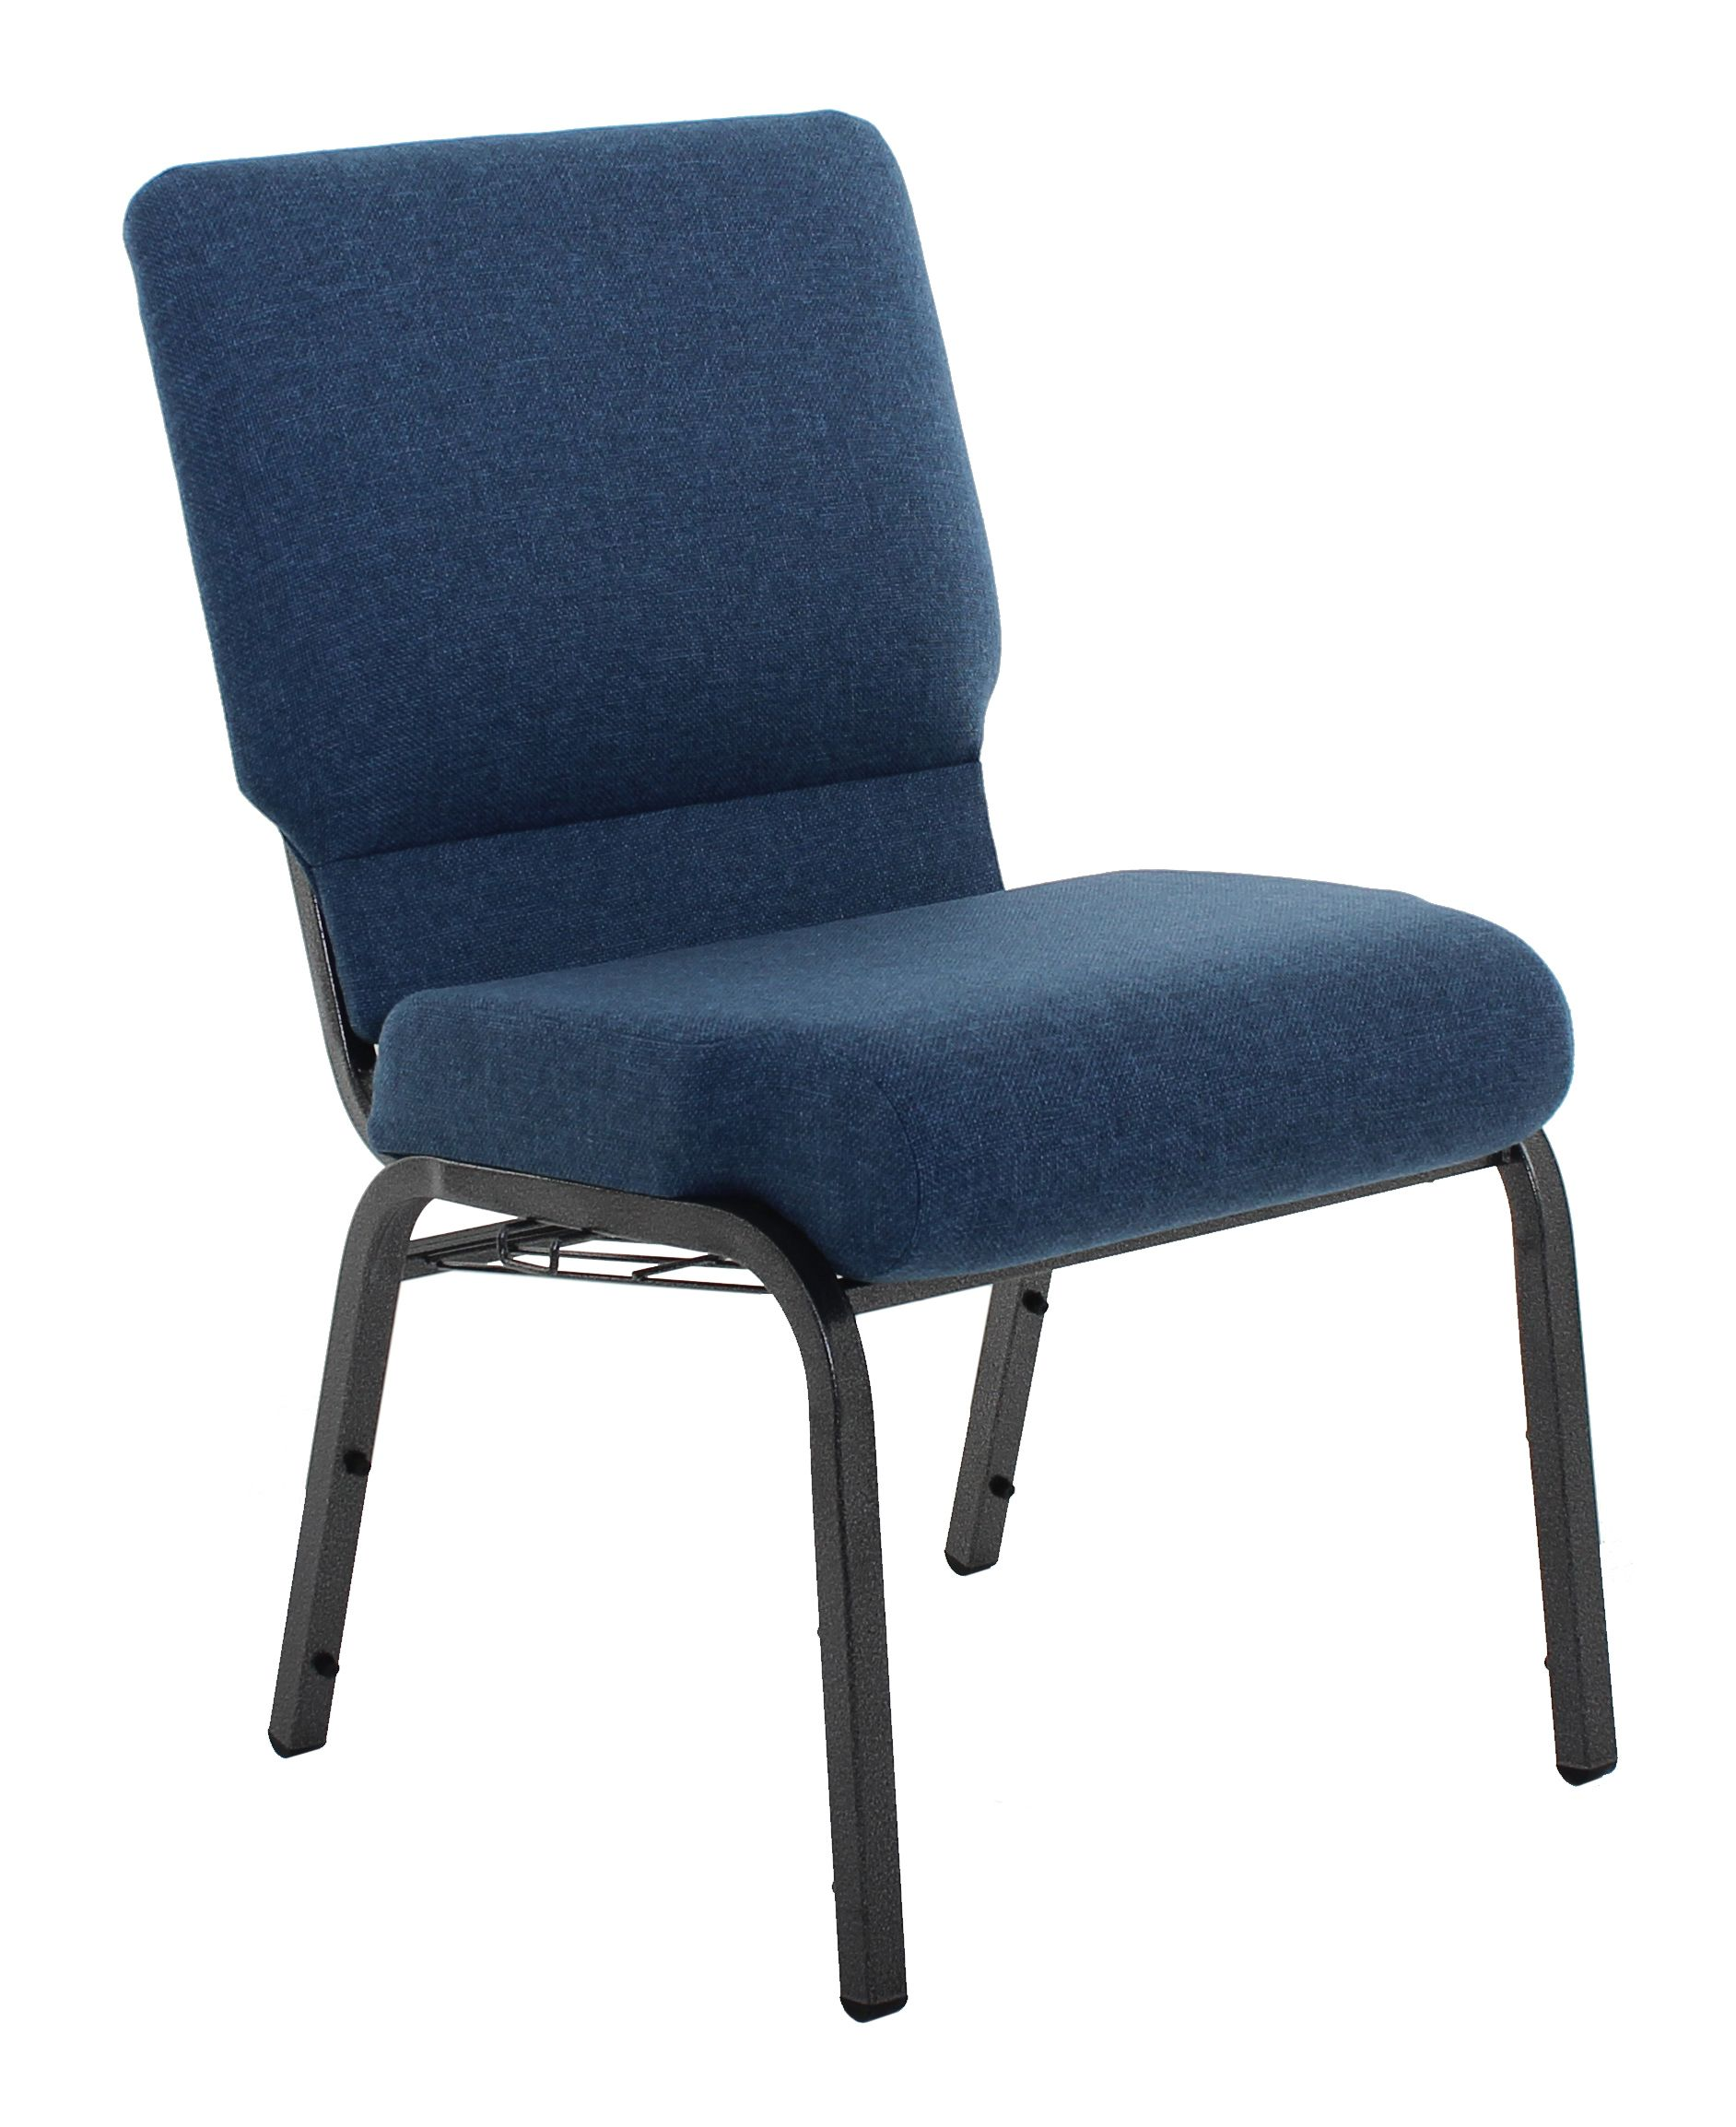 introducing the new freedom church chair by worship chairs this